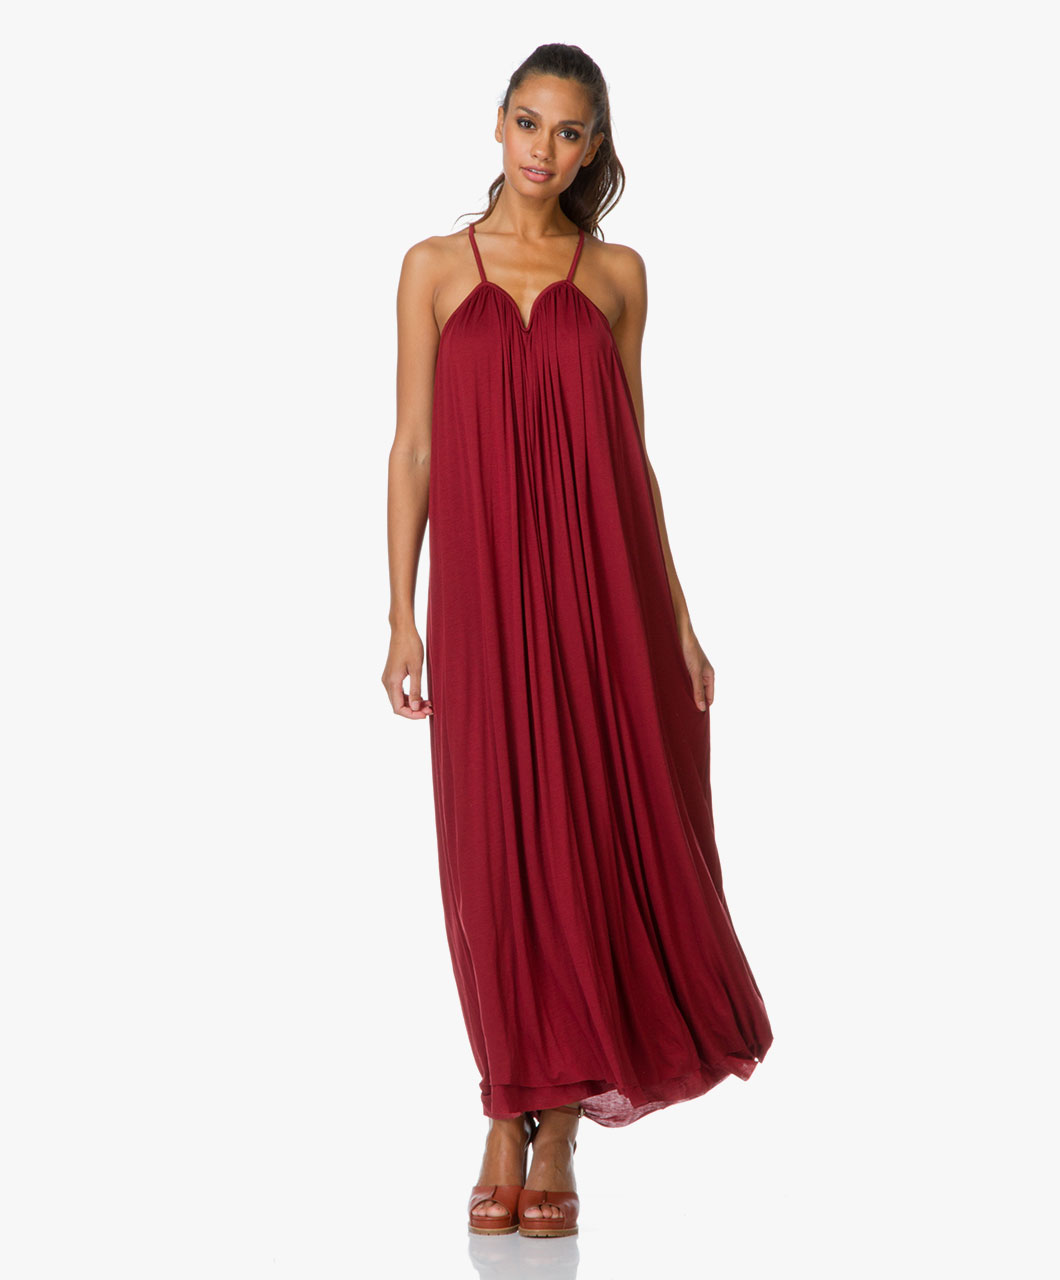 Filippa k summer dress in beach